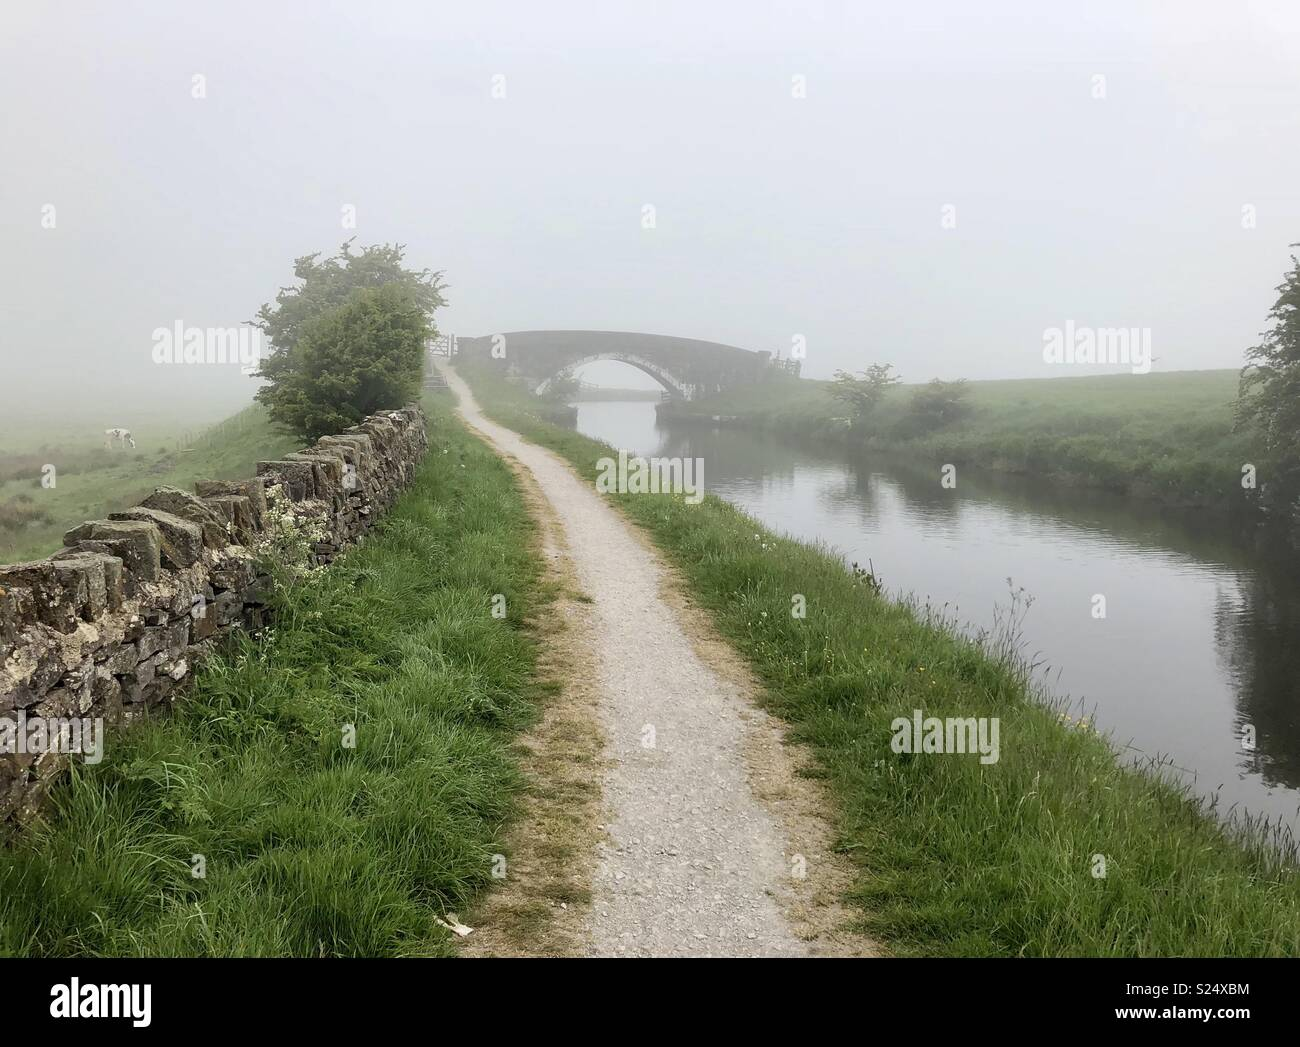 Misty morning on canal towpath - Stock Image